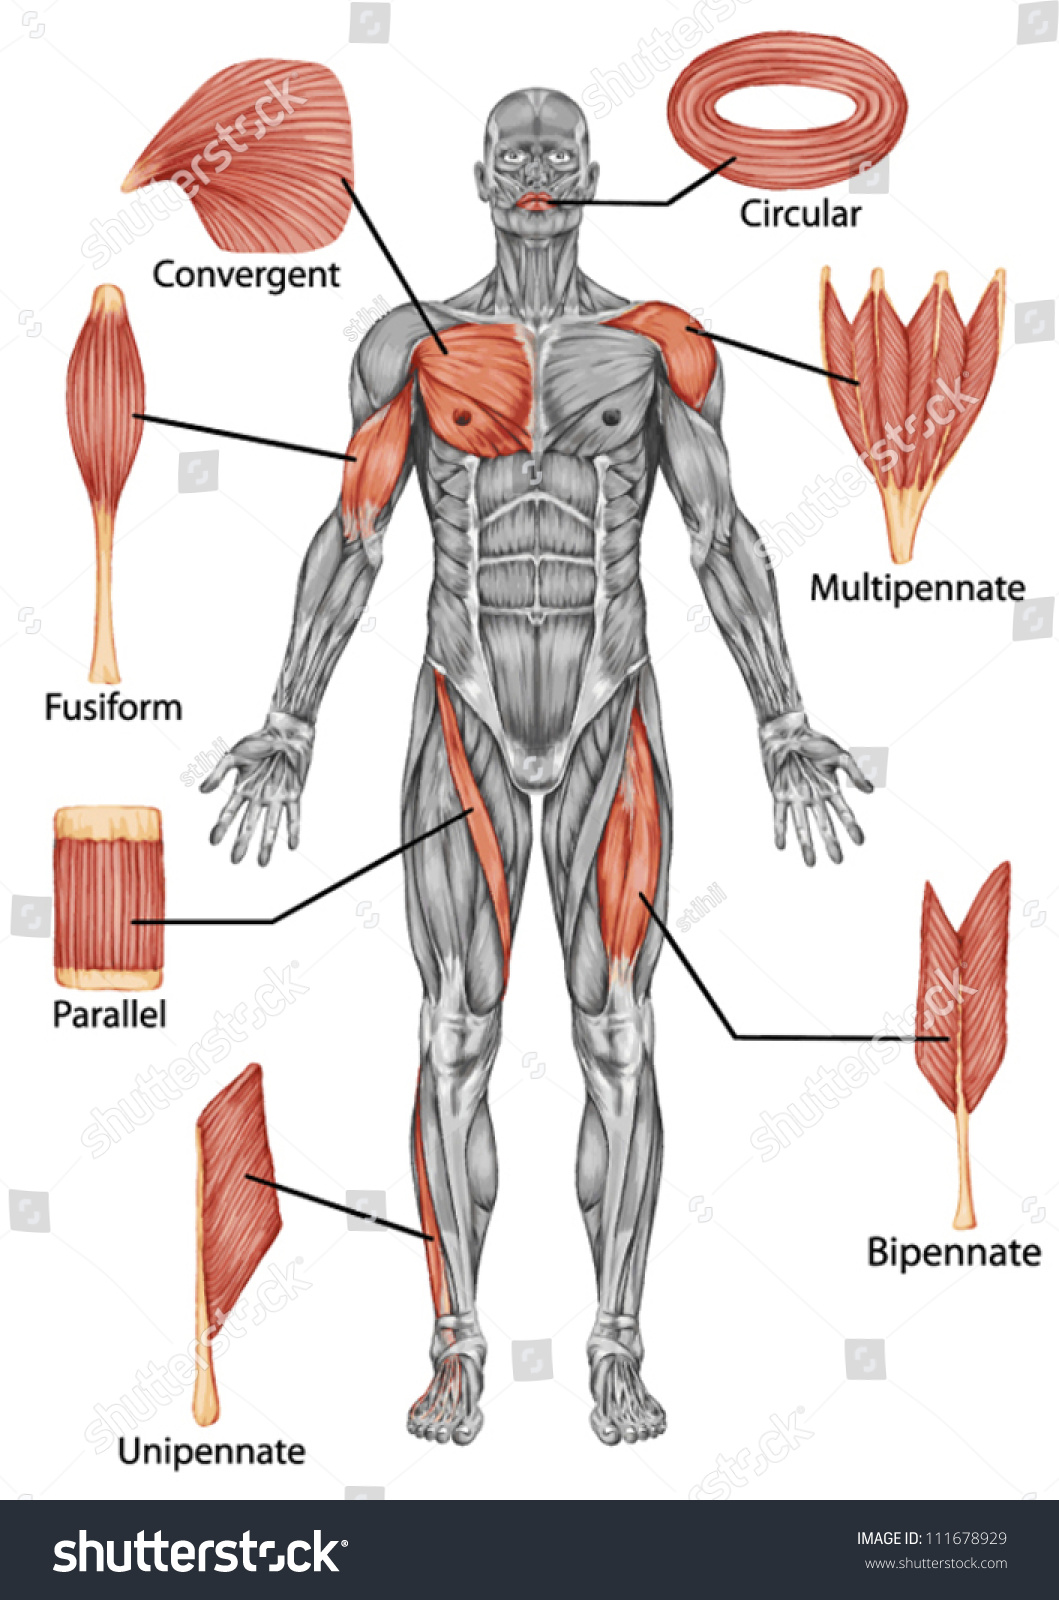 Anatomy Male Muscular System Posterior View Stock Vector 111678929 ...